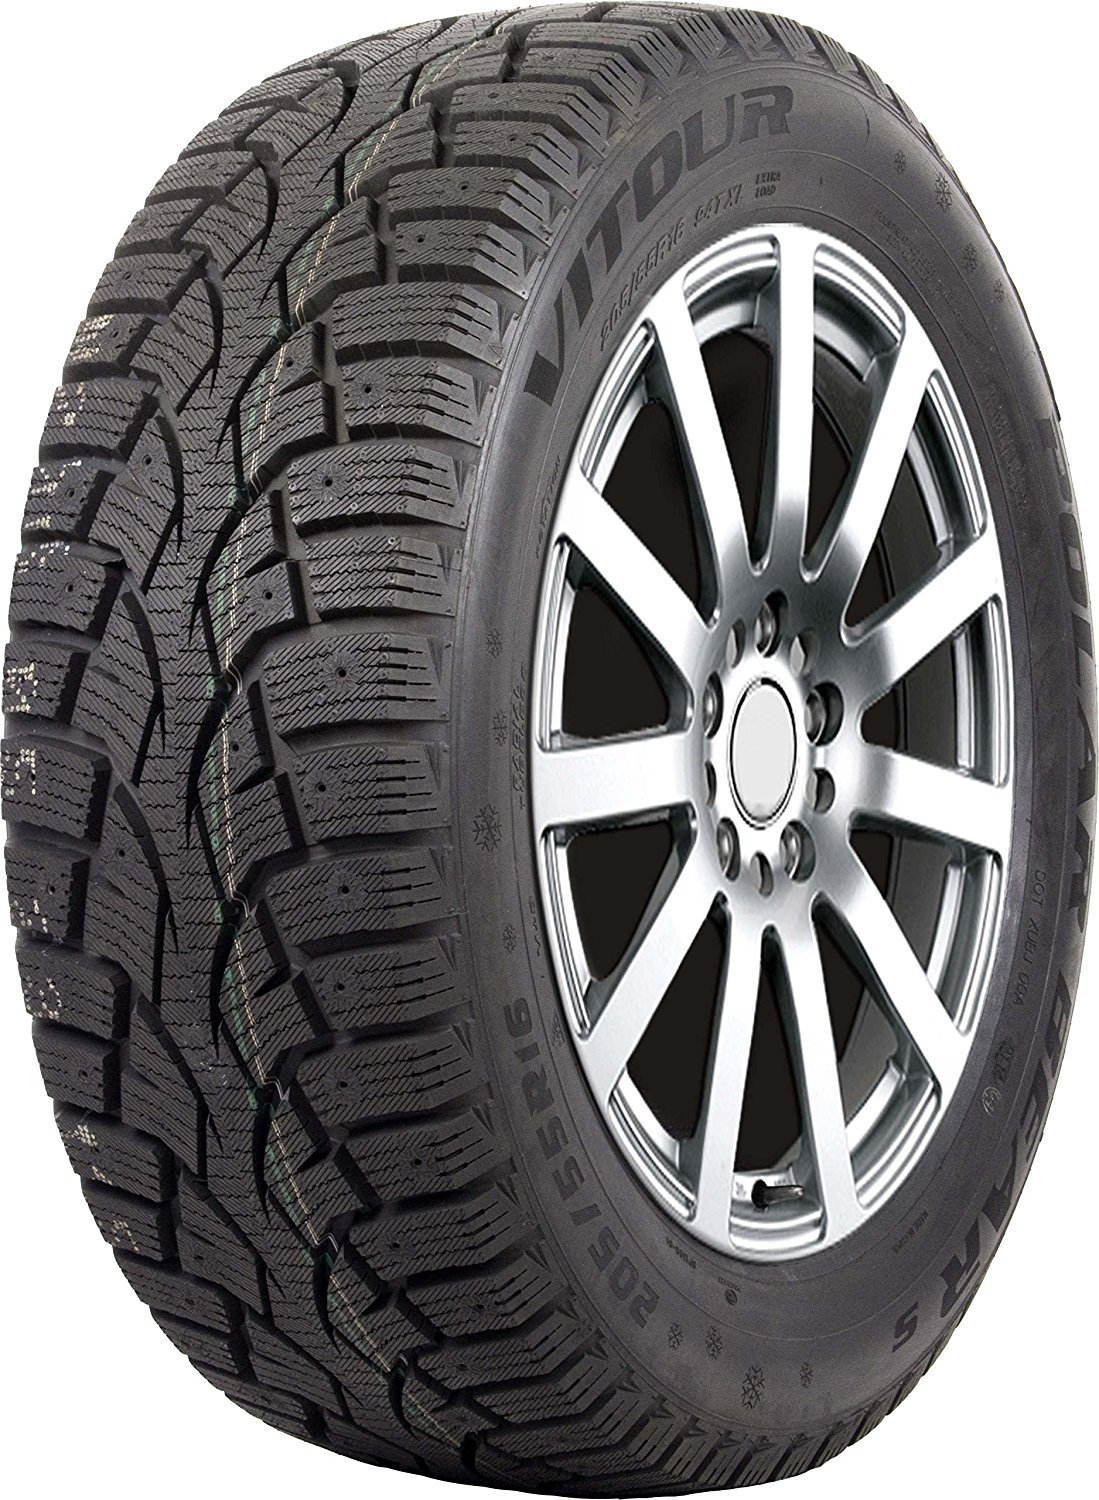 Vitour POLAR BEAR S (STUDDABLE) Studable-Winter Radial Tire - 175/65R14 82T 7000501